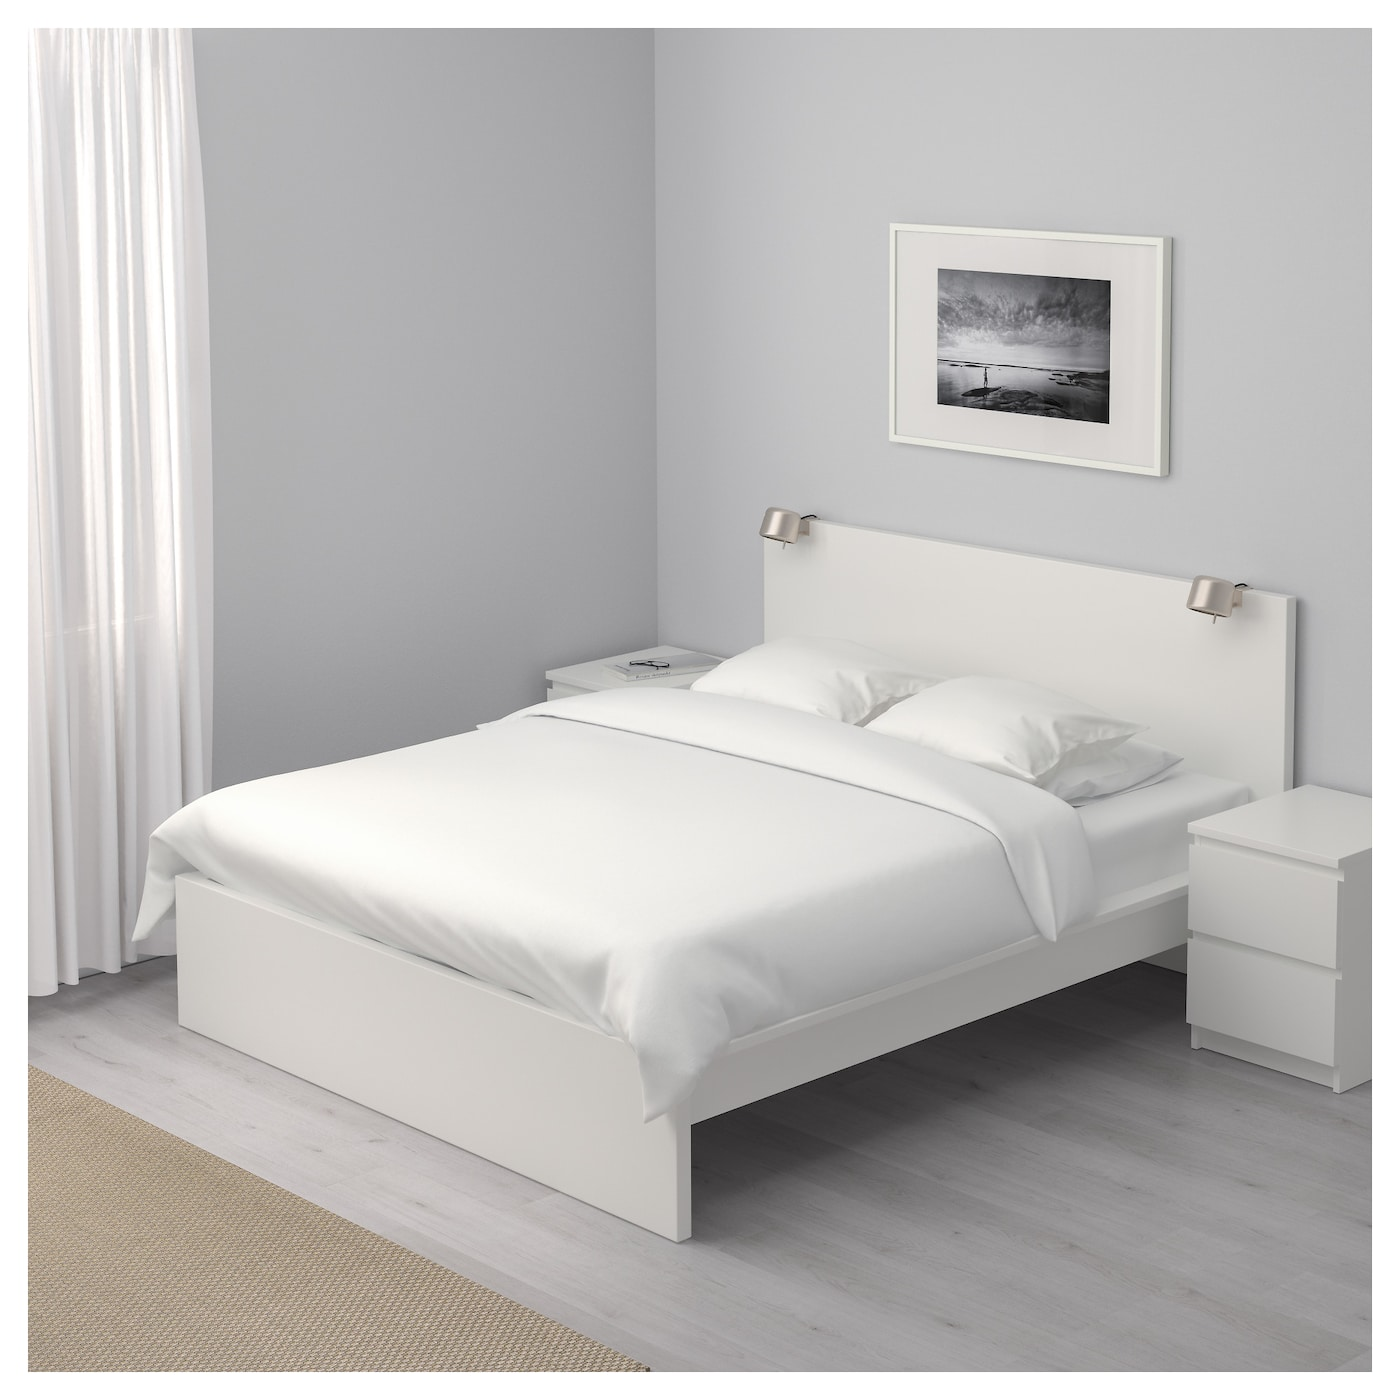 Ikea White Malm Bed Uk. ikea malm bed white. ikea malm bed frame for ...